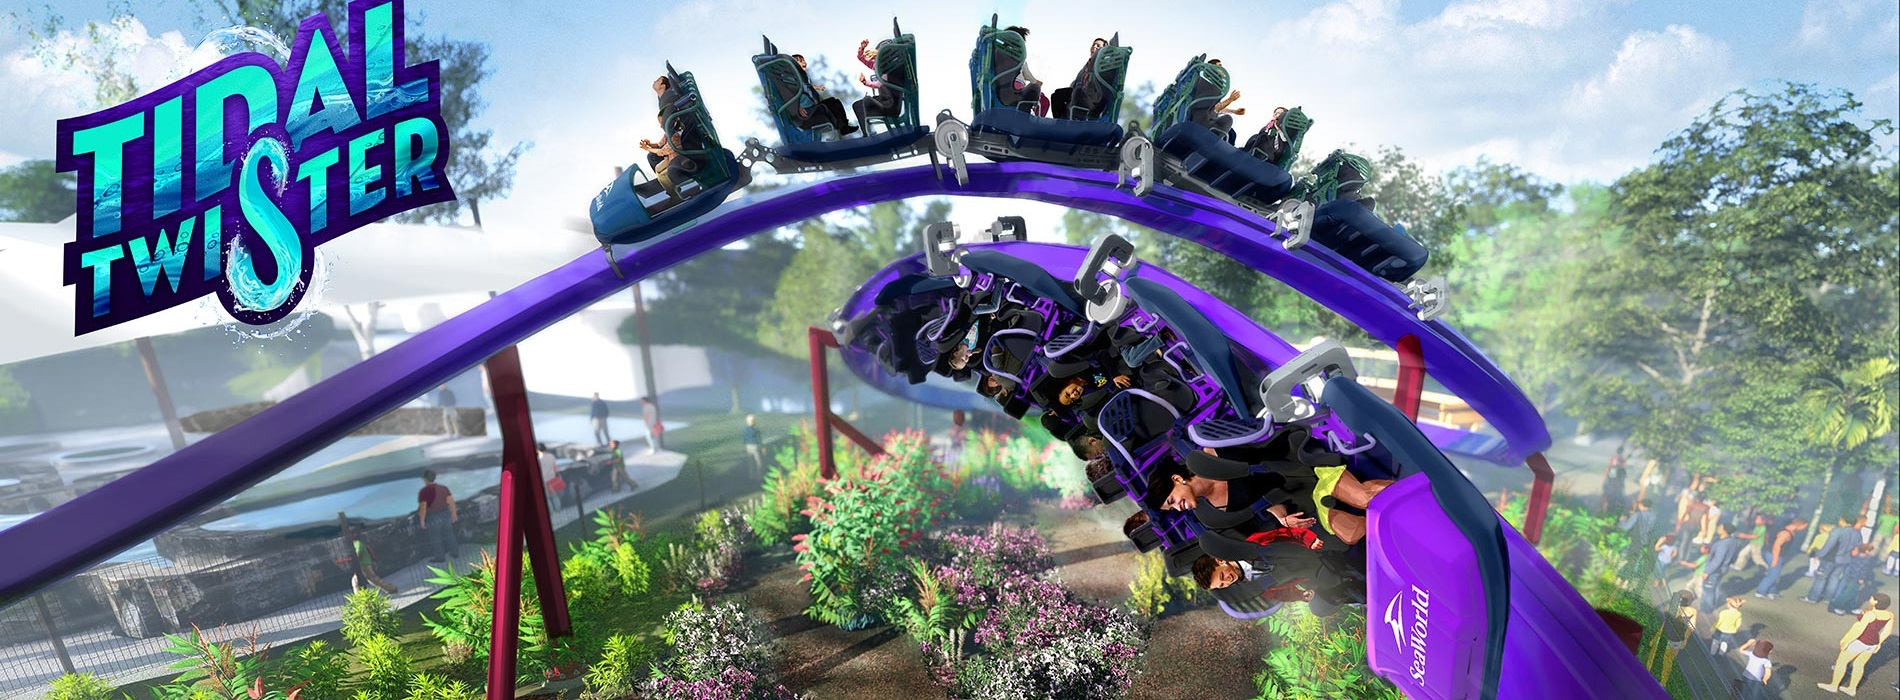 Tidal Twister - Coming in 2019